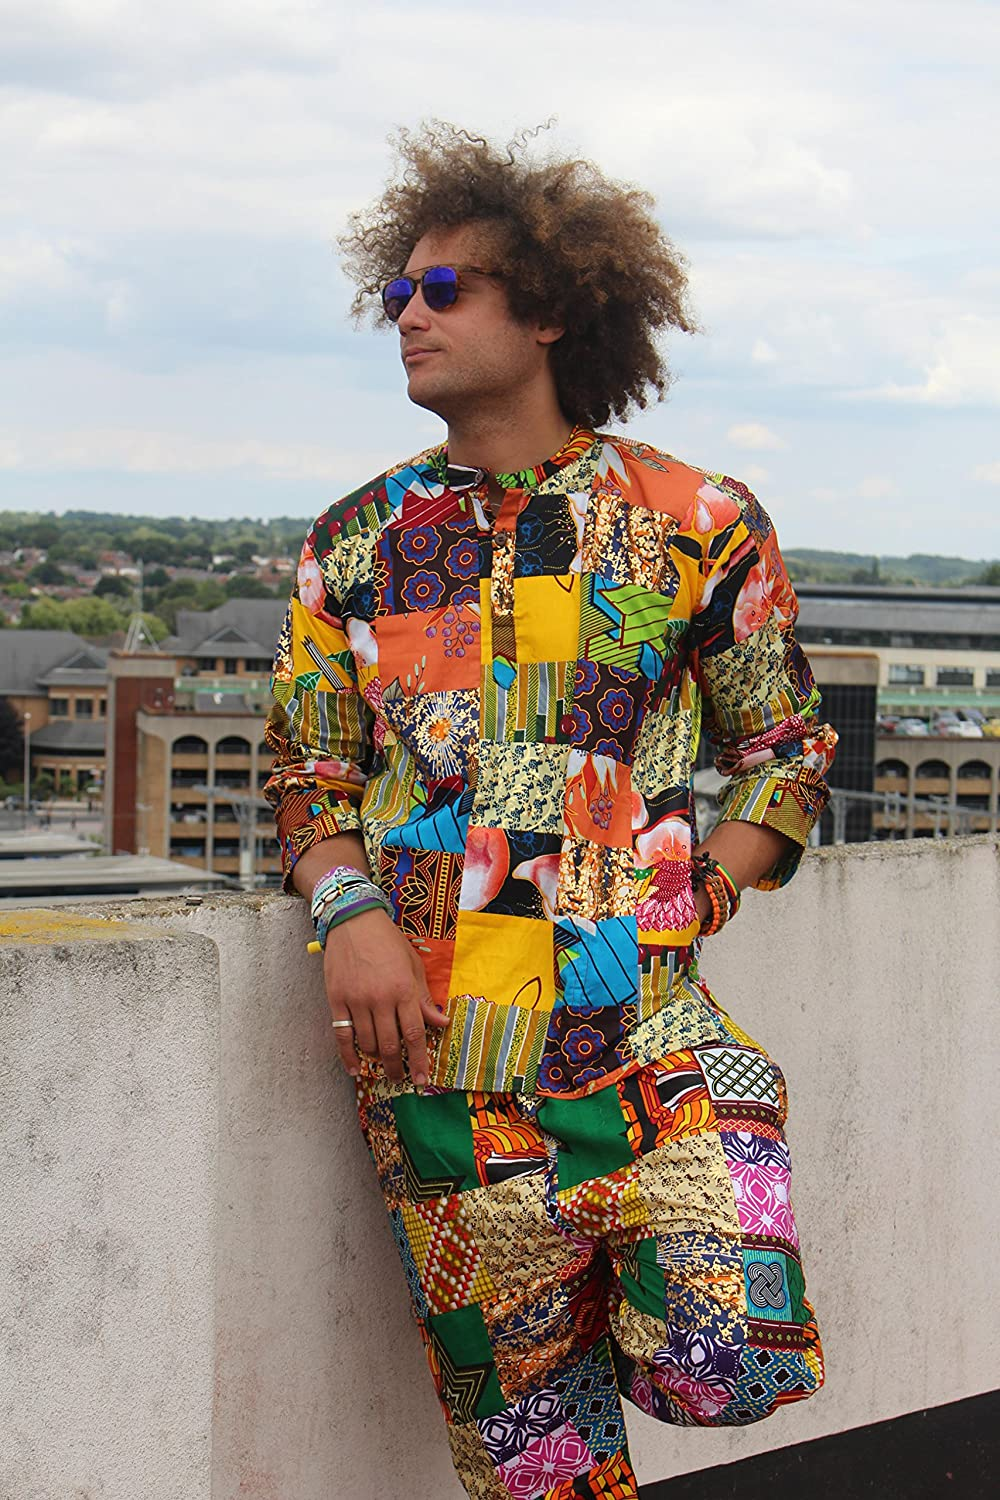 27bb40836e Amazon.com  Mens Matching Suit Patchwork African Two Piece Festival Clothing  African Outfit Dashiki Kente Clothing Kente Outfit Ankara  Handmade